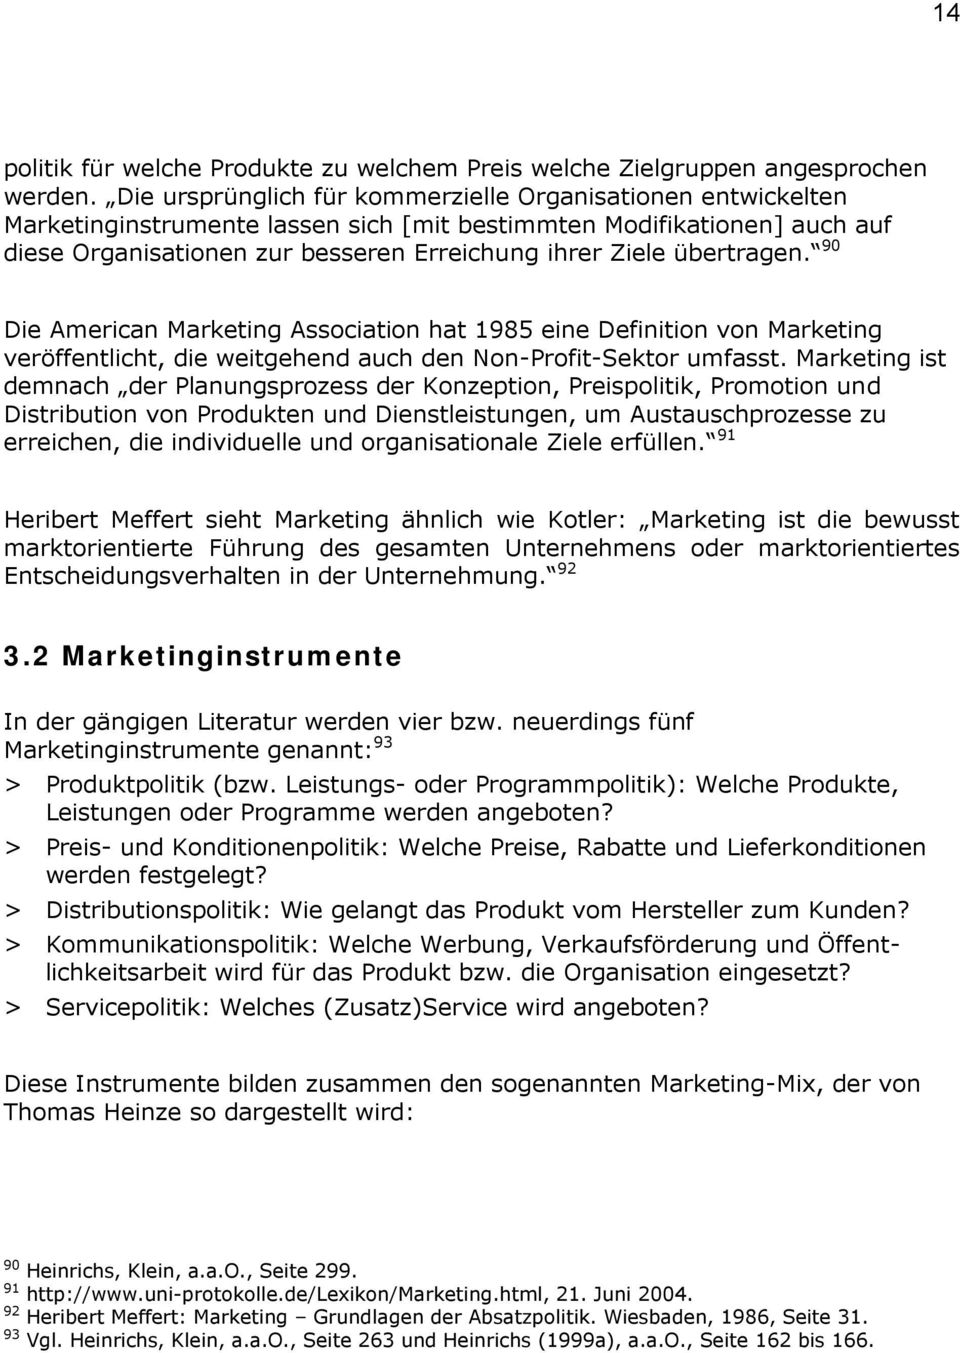 übertragen. 90 Die American Marketing Association hat 1985 eine Definition von Marketing veröffentlicht, die weitgehend auch den Non-Profit-Sektor umfasst.